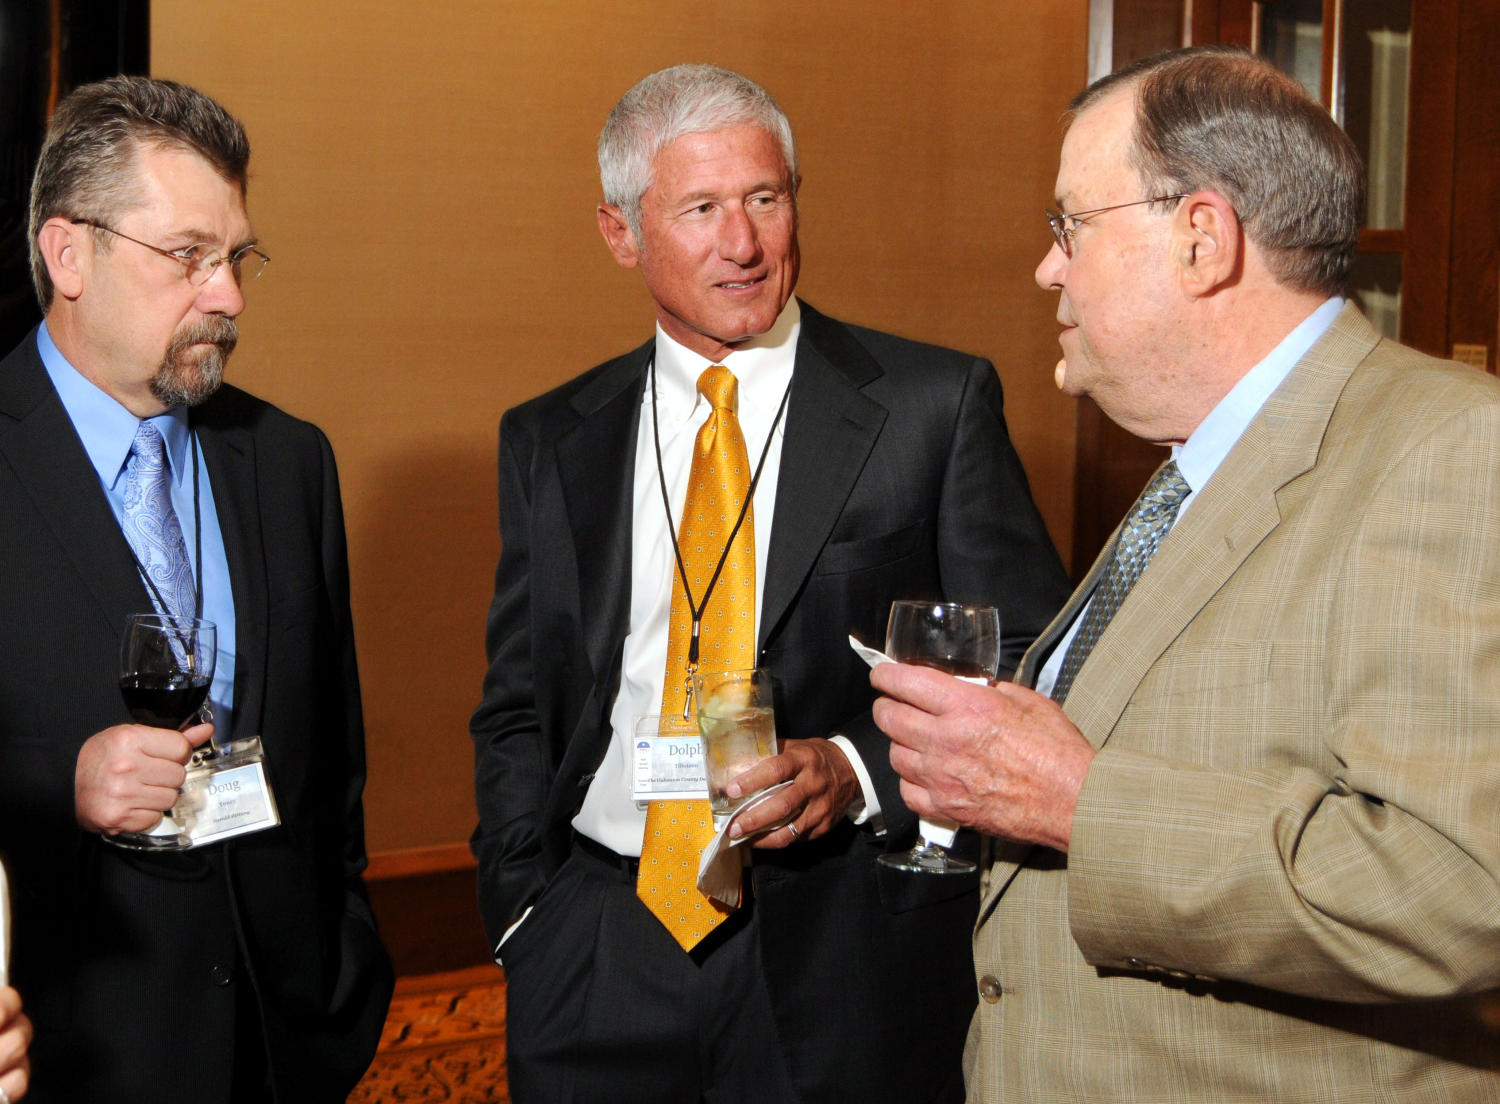 [Doug Toney and Dolph Tillotson], Photograph of Doug Toney (left), Dolph Tillotson (center) and an unidentified guest seen standing with one another chatting and drinking refreshments during a reception at the 2010 Texas Daily Newspaper Association annual meeting held in Houston, Texas.,